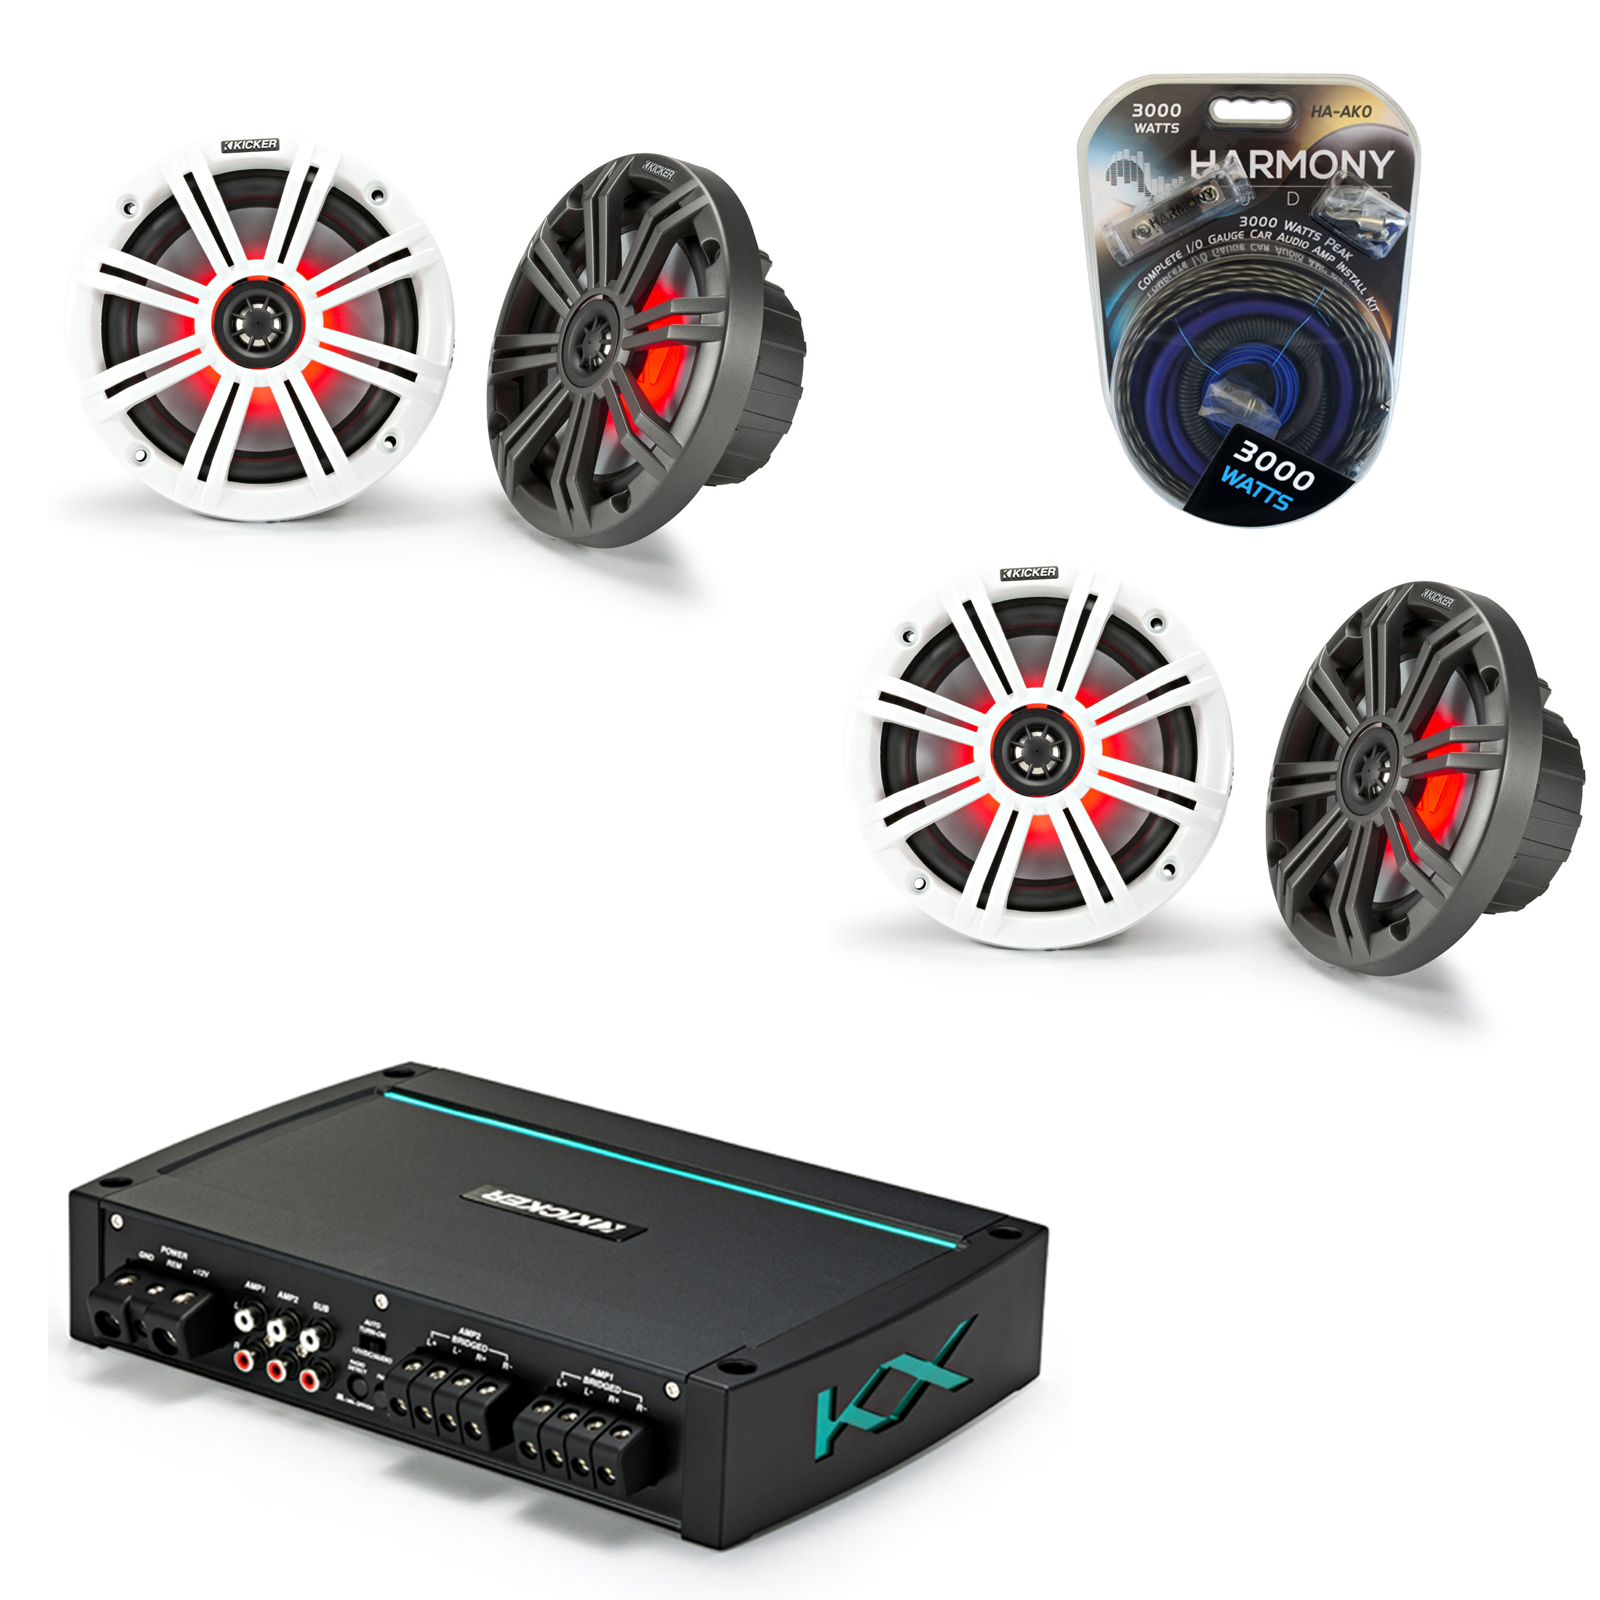 "Kicker Marine Audio 4-Ch Speaker Boat Amp w/ 6.5"" 7 Color LED Light Coaxial Speakers (2) & 3000W Amp Install Kit"